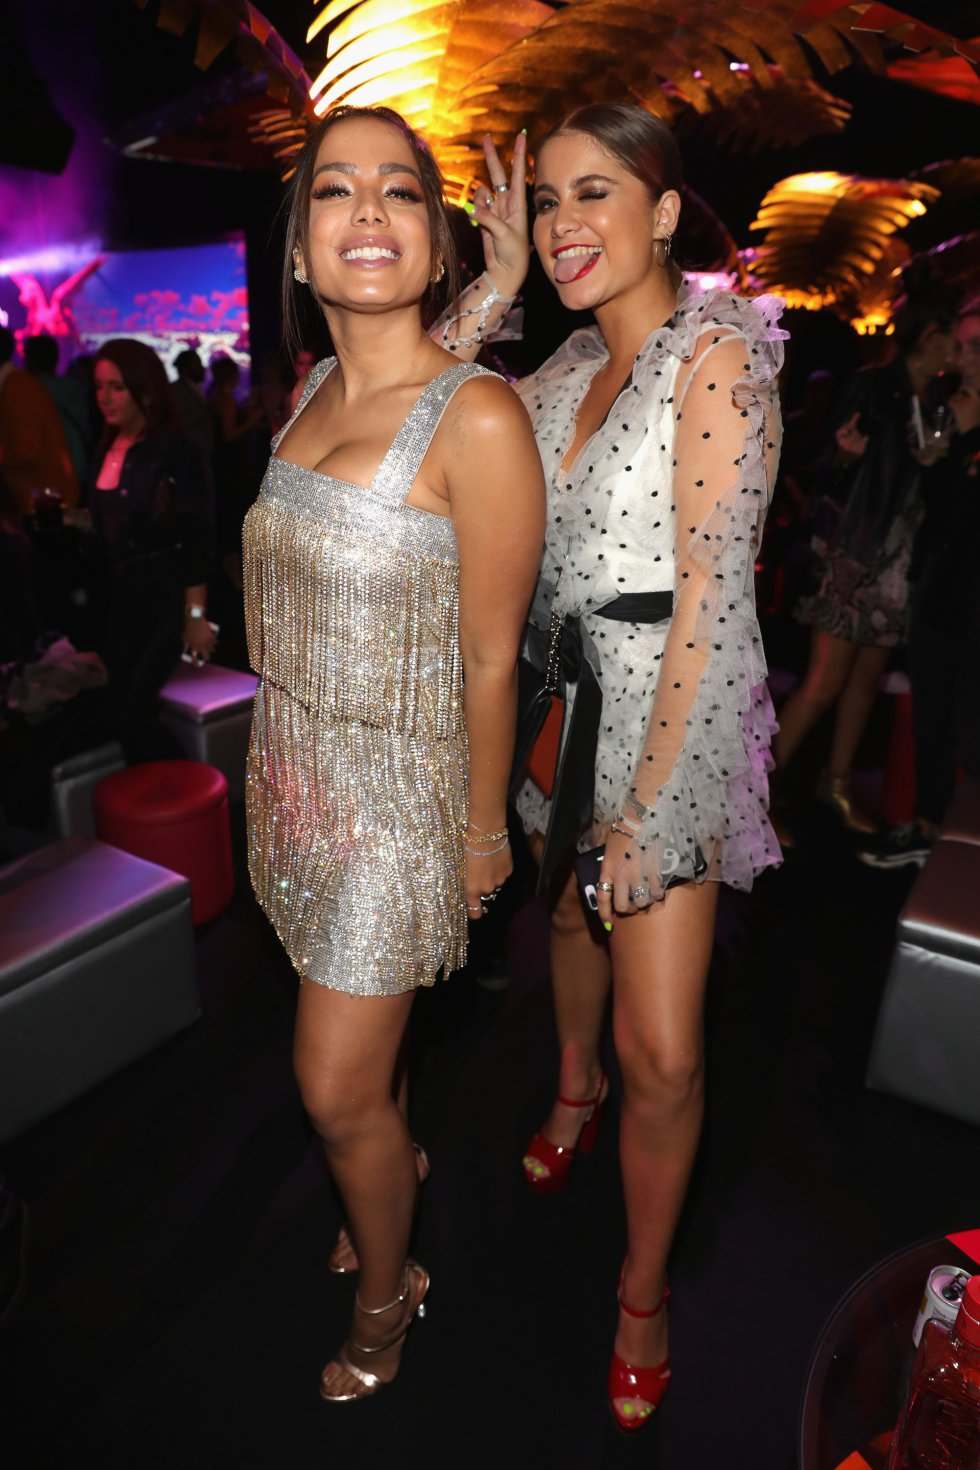 BILBAO, SPAIN - NOVEMBER 04: Anitta and Sofia Reyes during the MTV EMAs 2018 after show party at Bilbao Exhibition Centre on November 4, 2018 in Bilbao, Spain.  (Photo by Andreas Rentz/Getty Images for MTV)